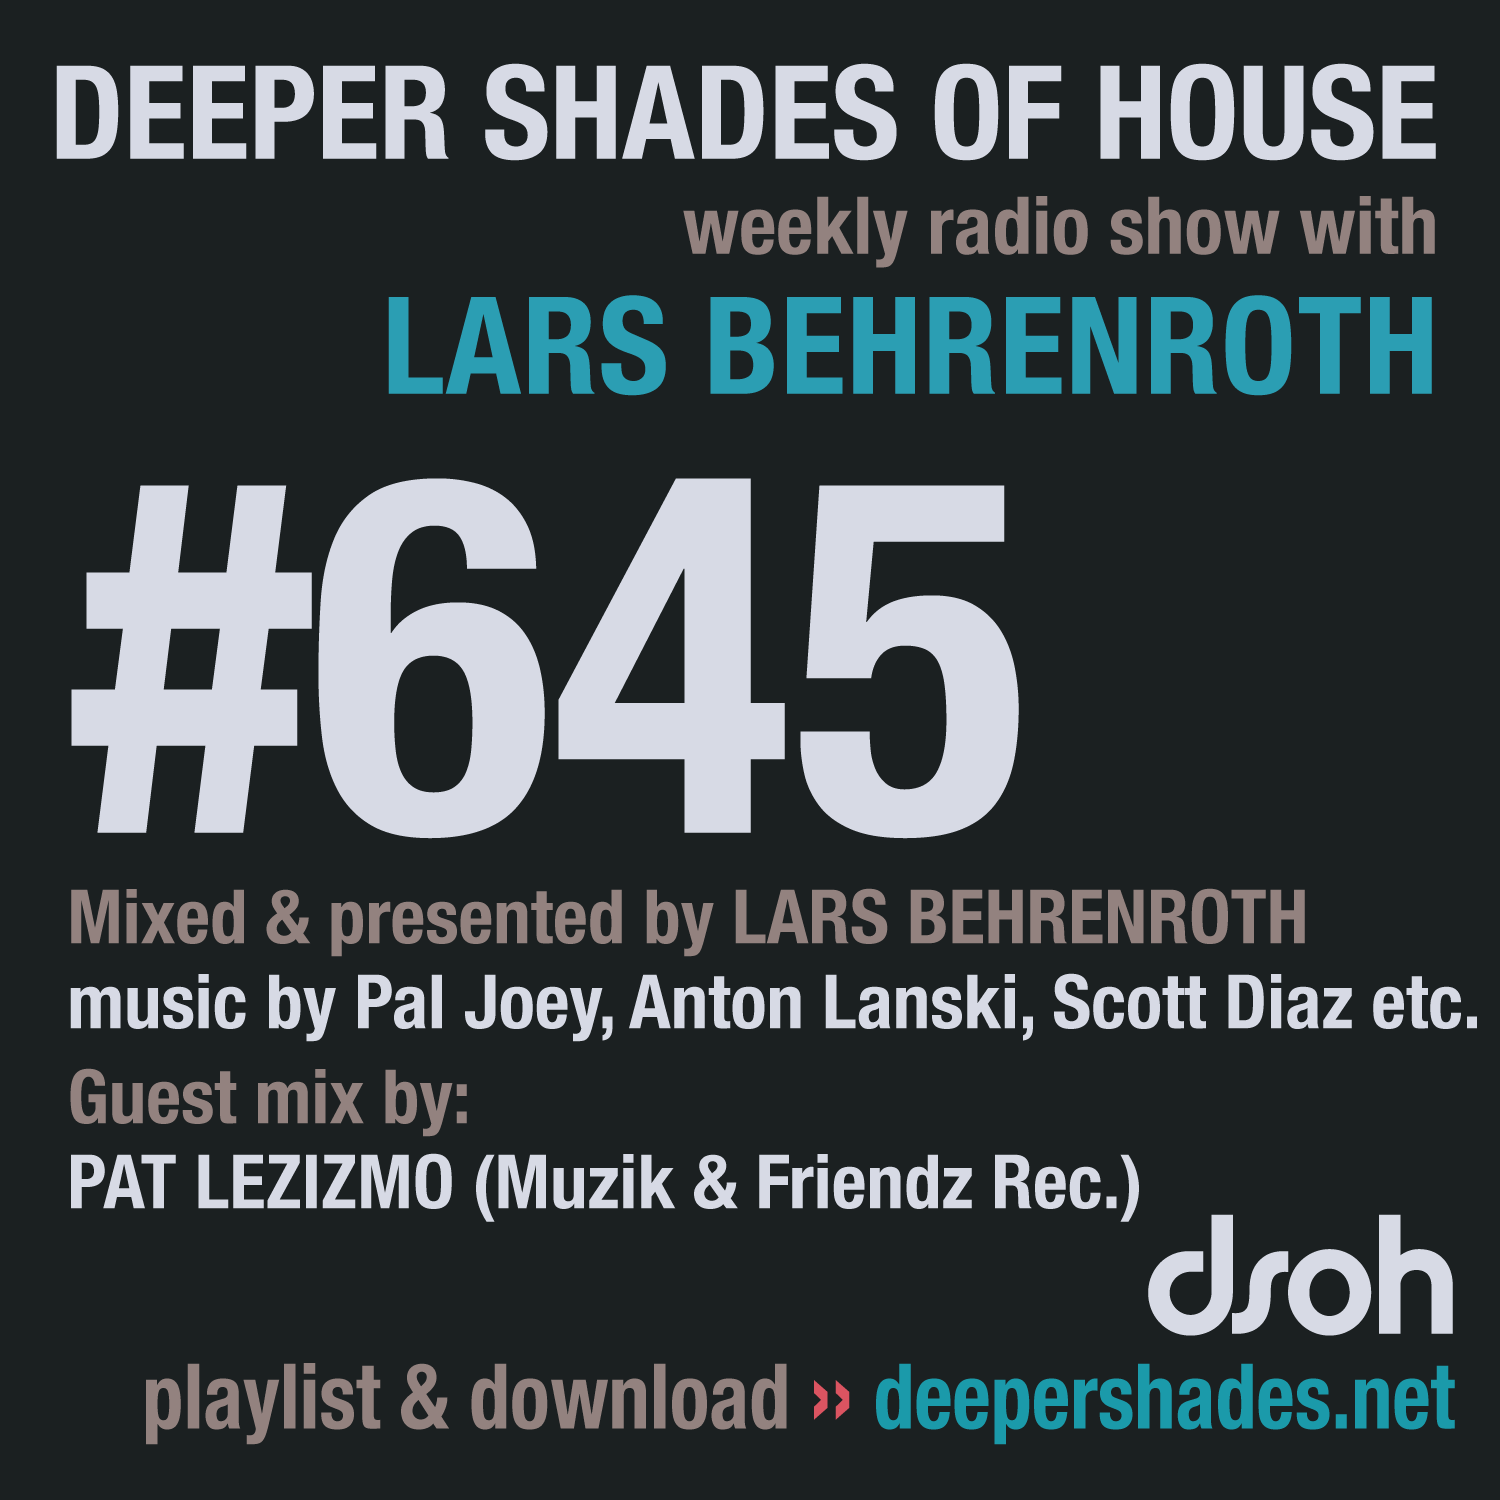 Deeper Shades Of House 645